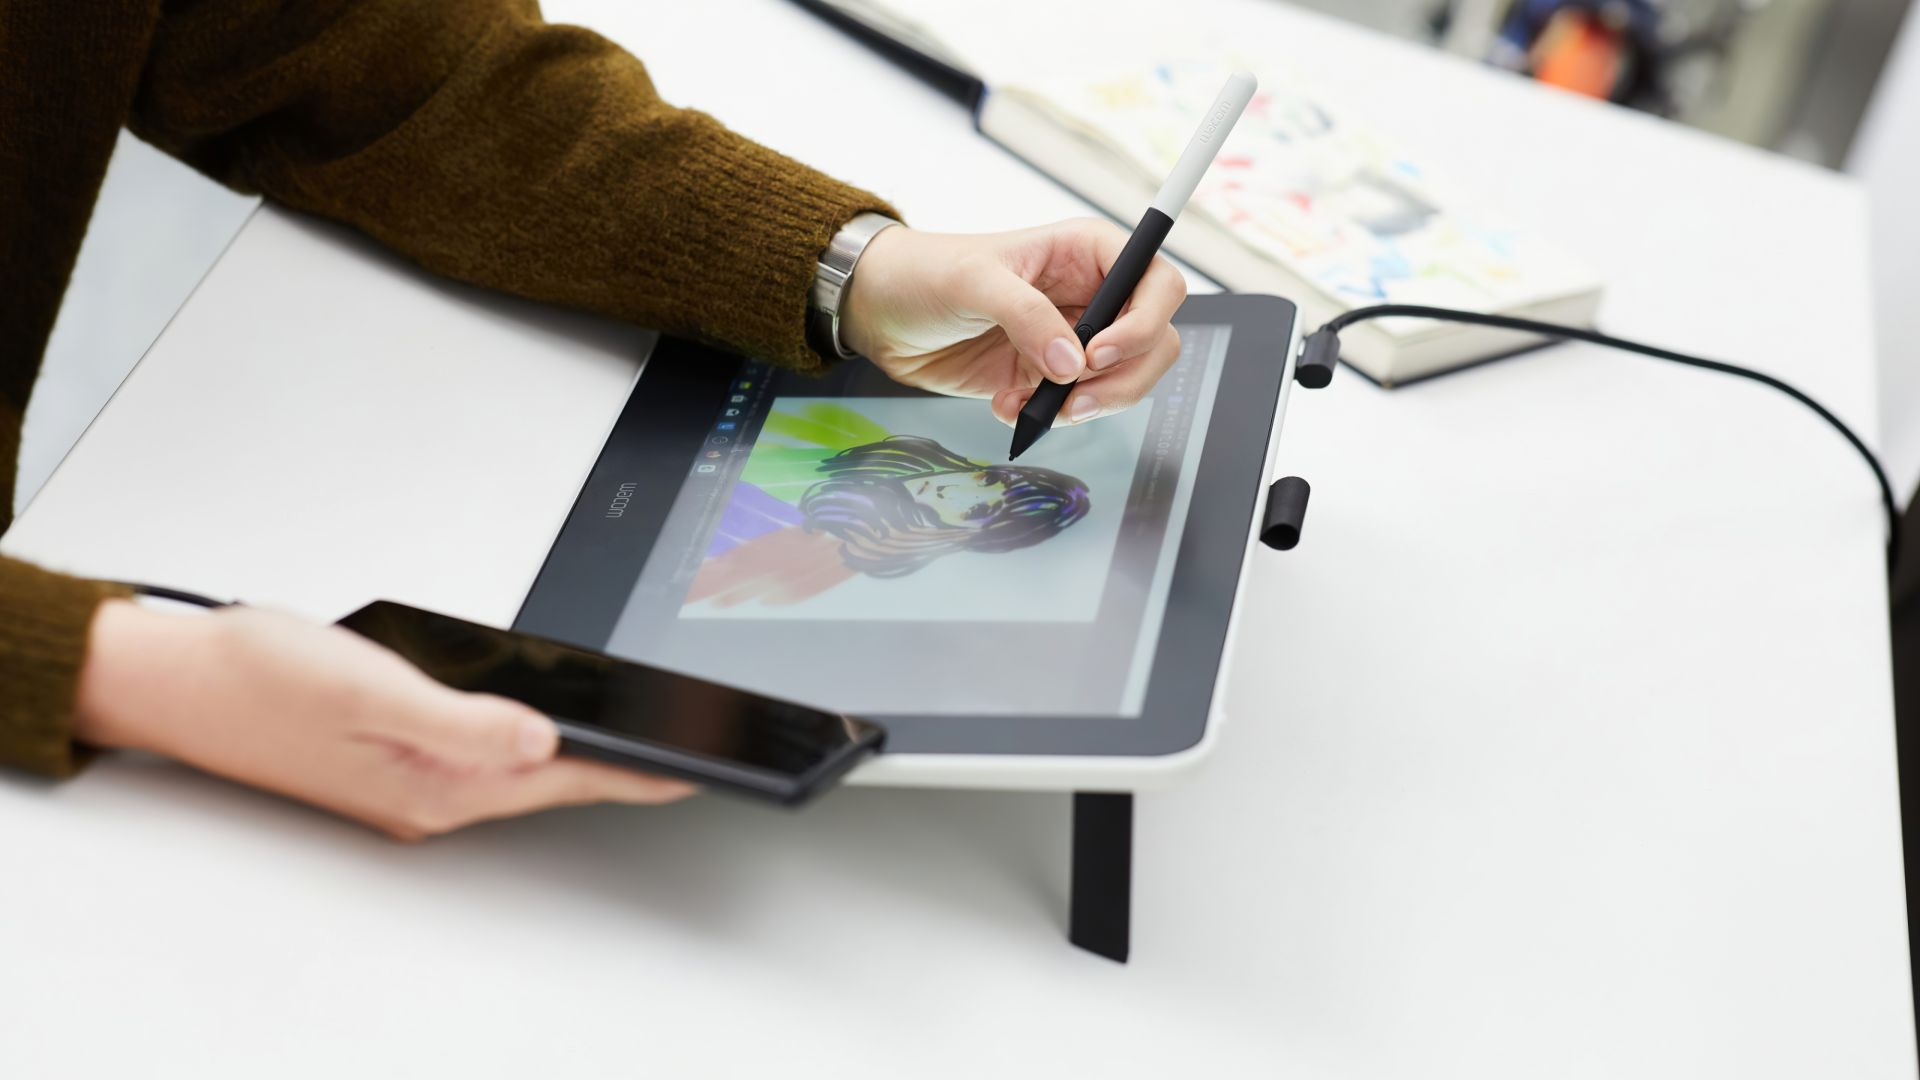 Wacom One, CES 2020, 5K (horizontal)